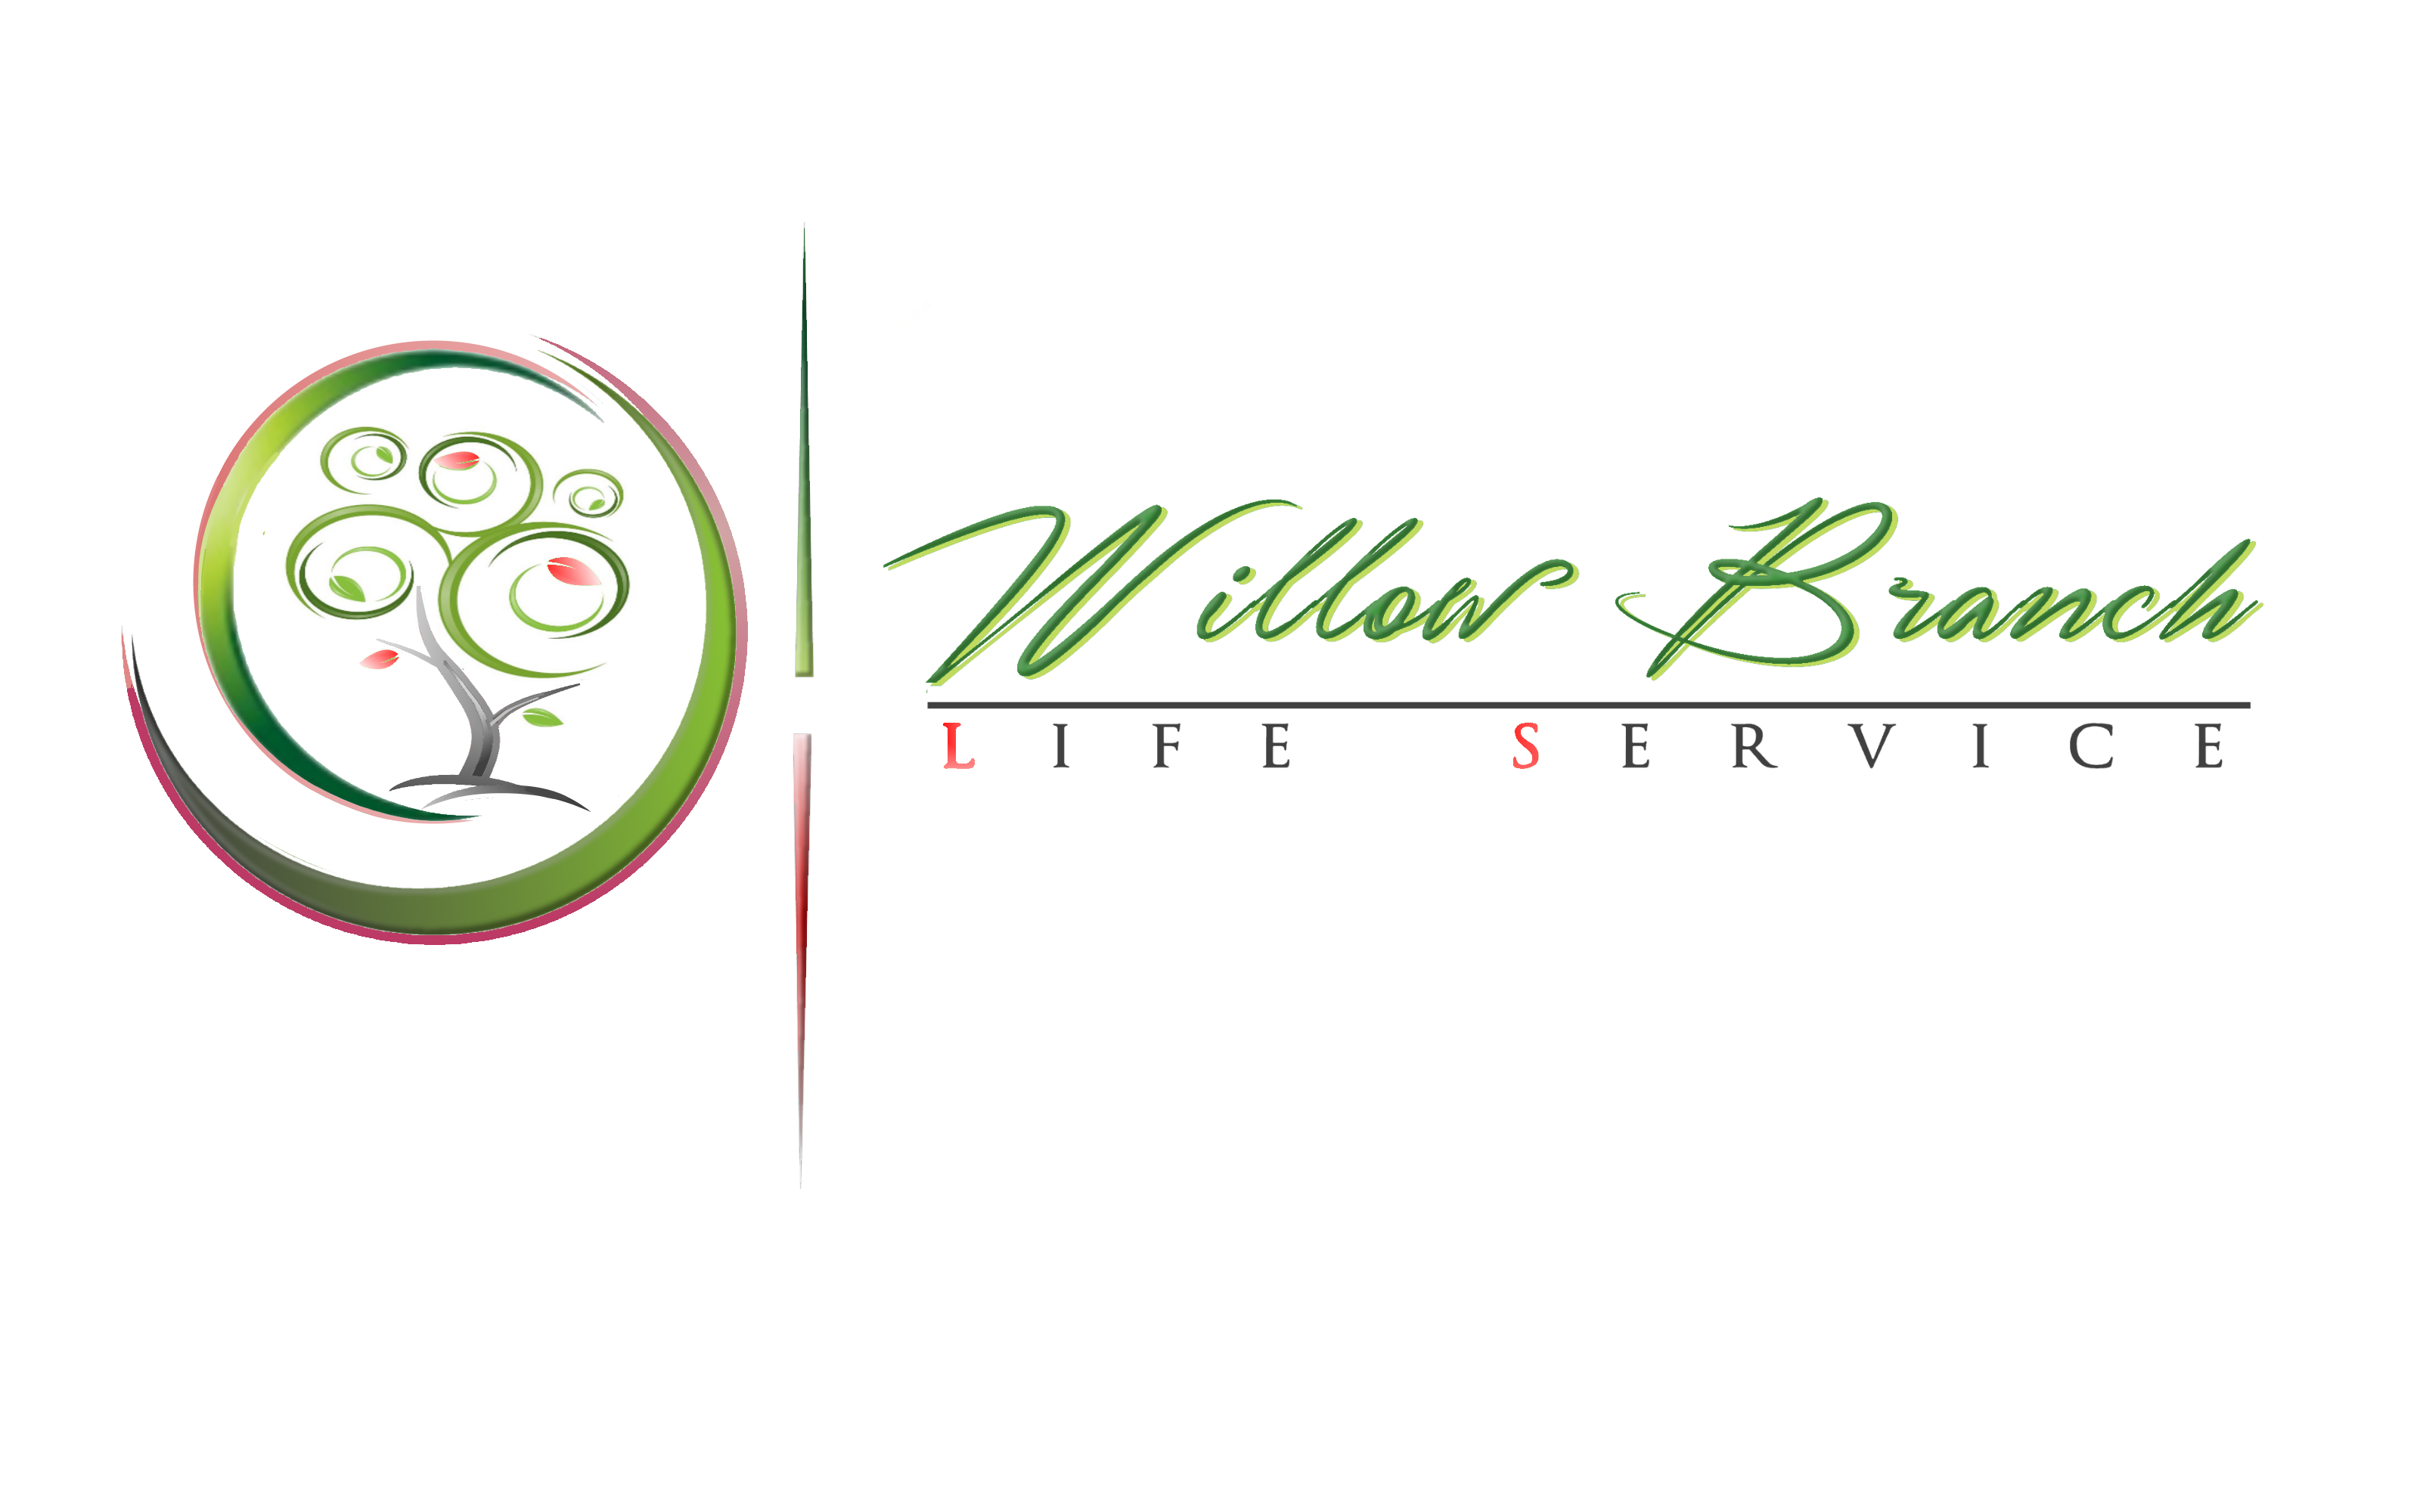 Logo Design by Roberto Bassi - Entry No. 387 in the Logo Design Contest Artistic Logo Design for Willow Branch Life Service.